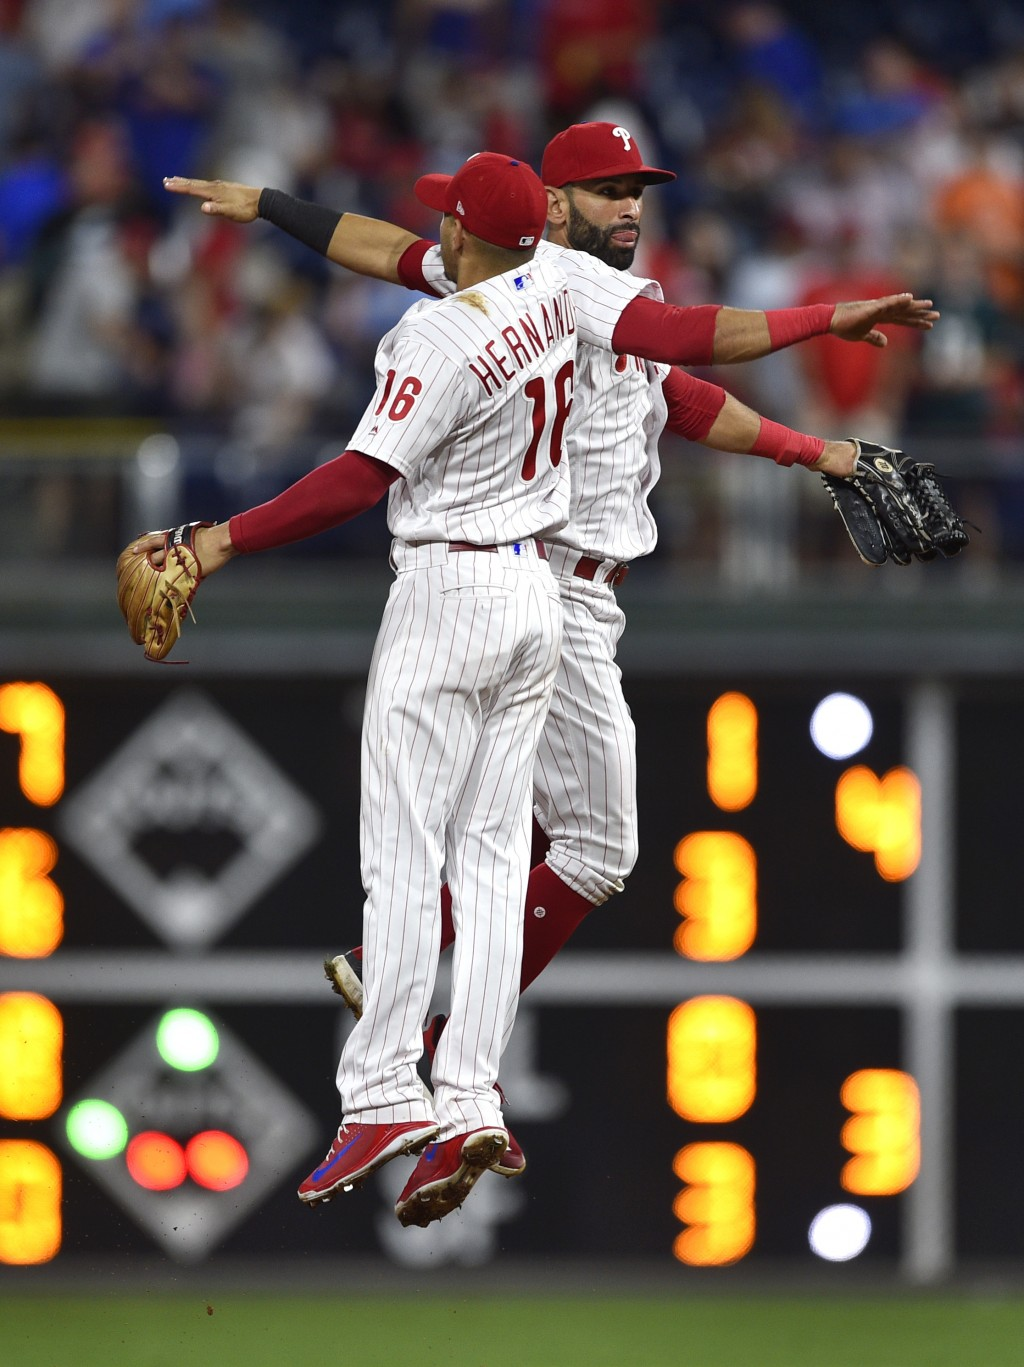 Philadelphia Phillies' Cesar Hernandez (16) and Jose Bautista celebrate a victory over the Miami Marlins, Saturday, Sept. 15, 2018, in Philadelphia. (